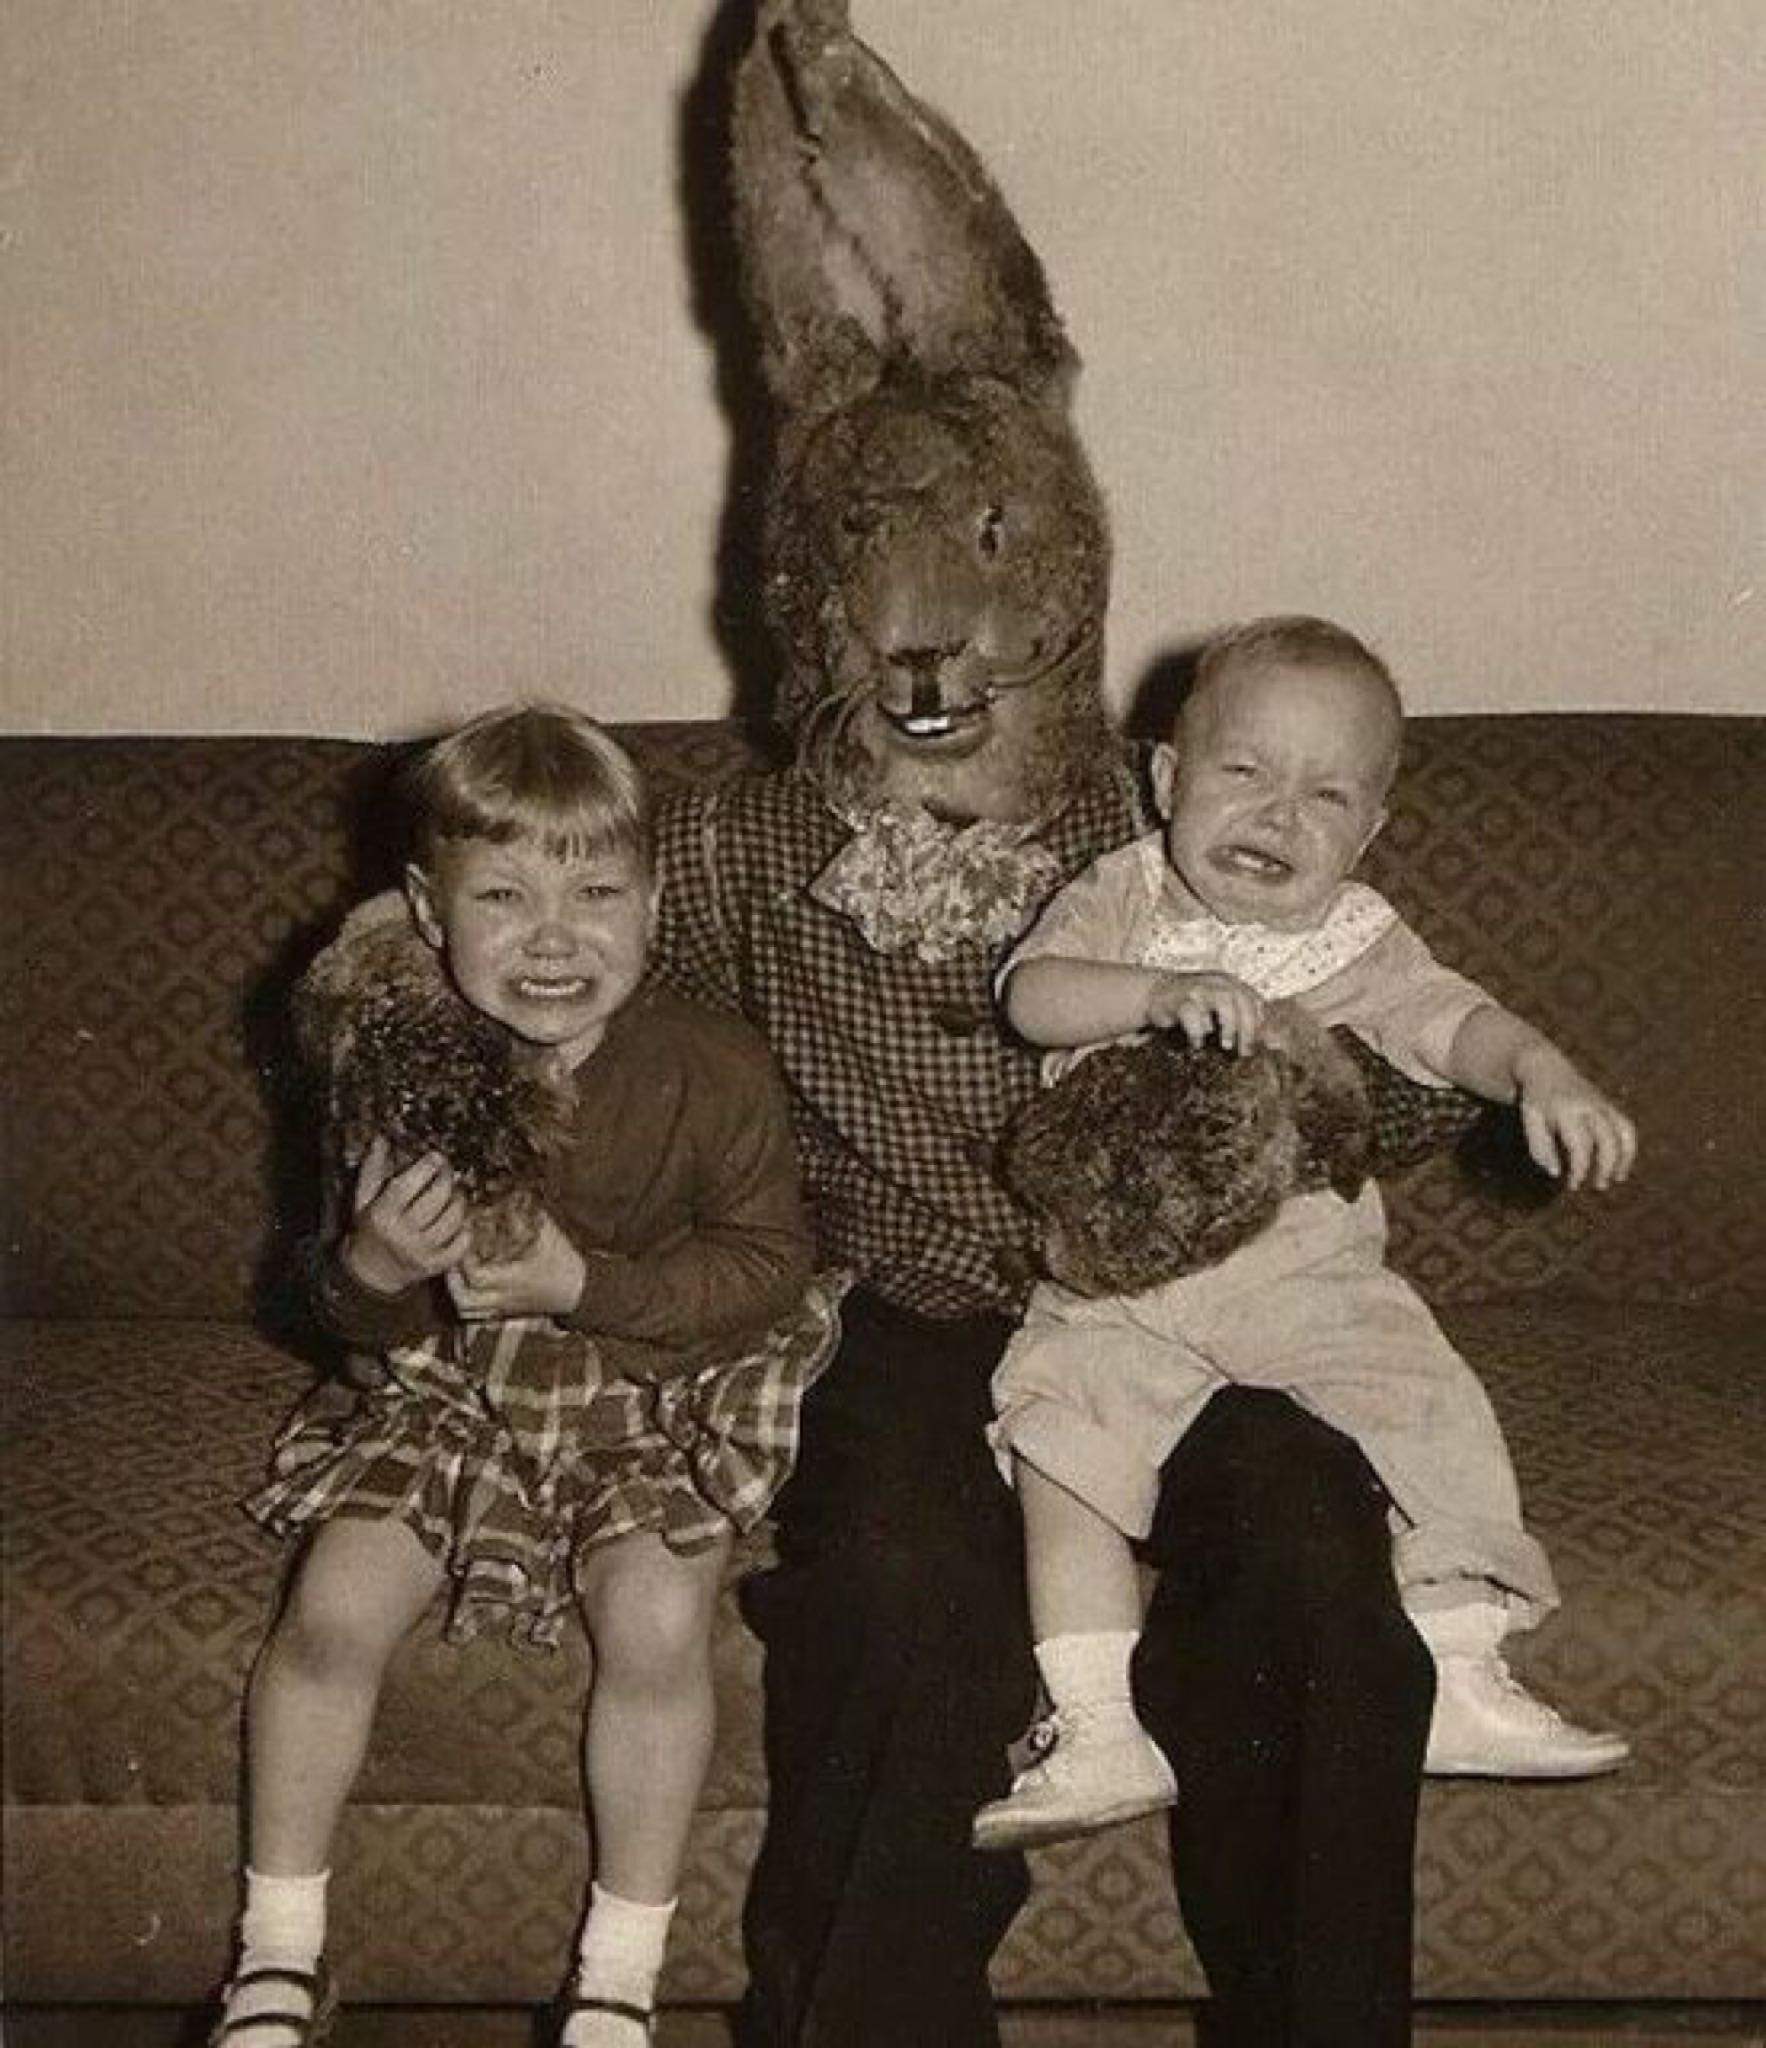 Hey kids, This Sunday is Easter